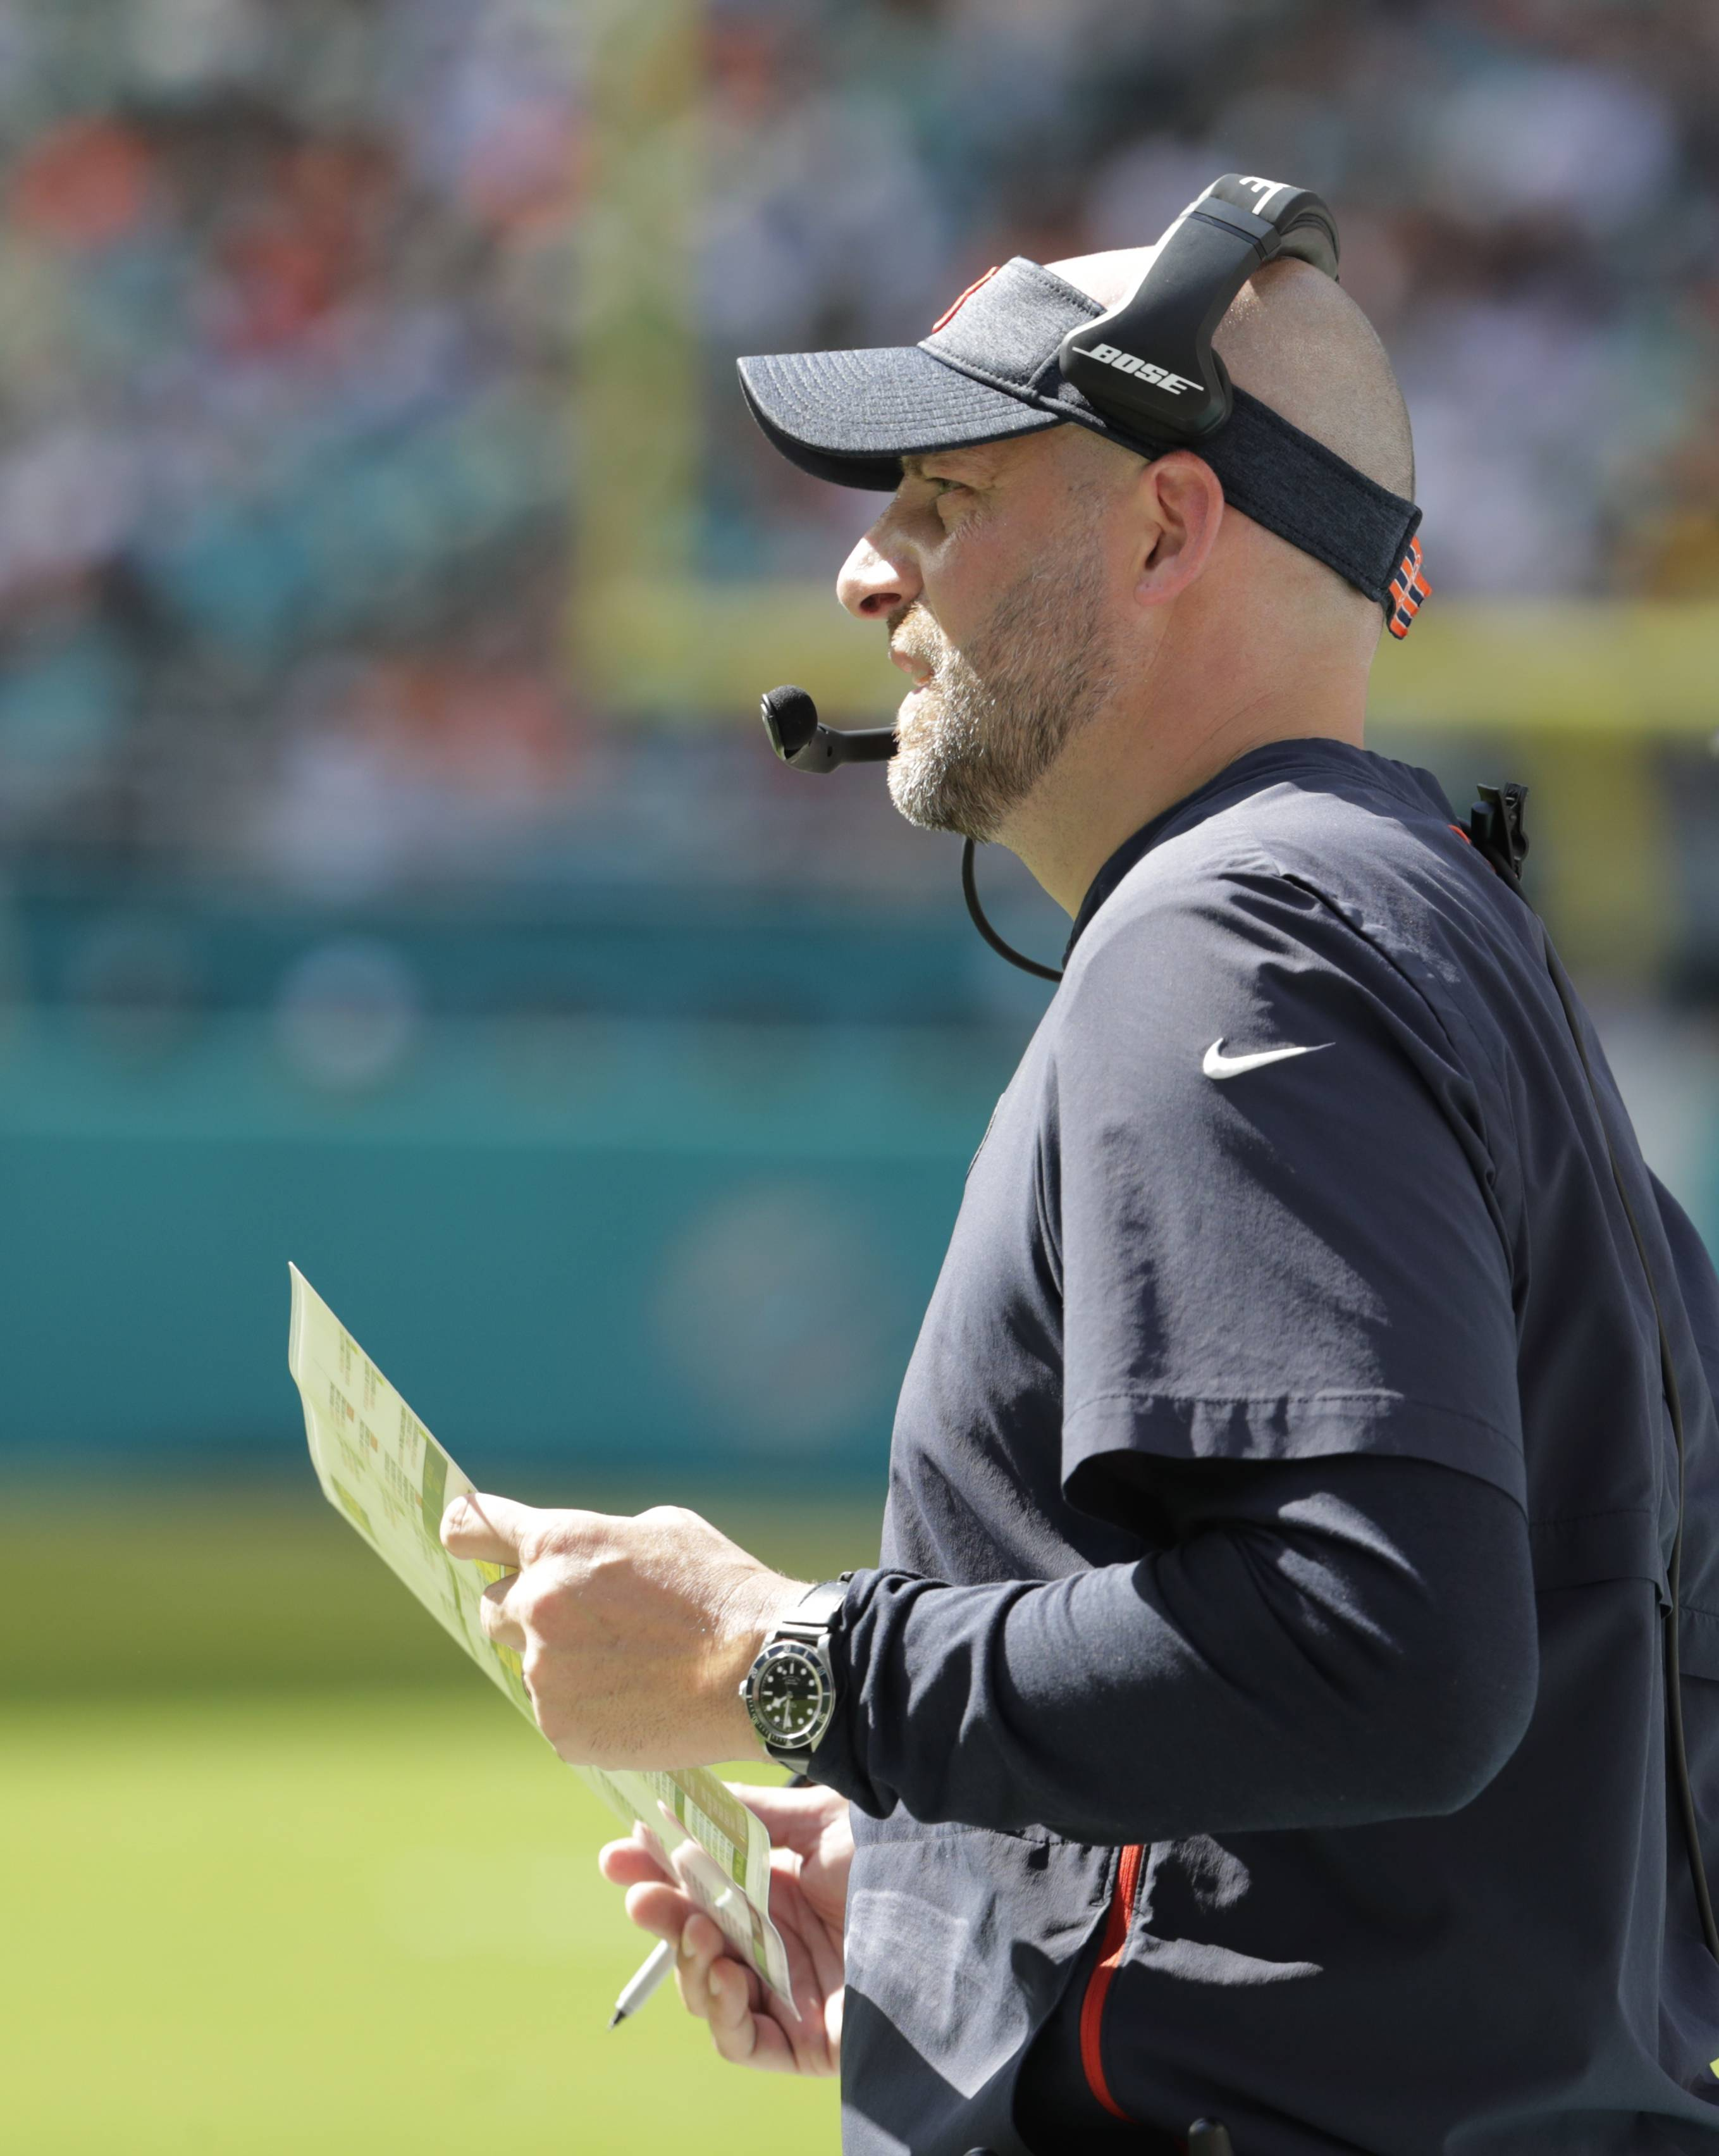 Chicago Bears head coach Matt Nagy watches his team from the sidelines, during the second half of an NFL football game against the Miami Dolphins, Sunday, Oct. 14, 2018, in Miami Gardens, Fla. (AP Photo/Lynne Sladky)